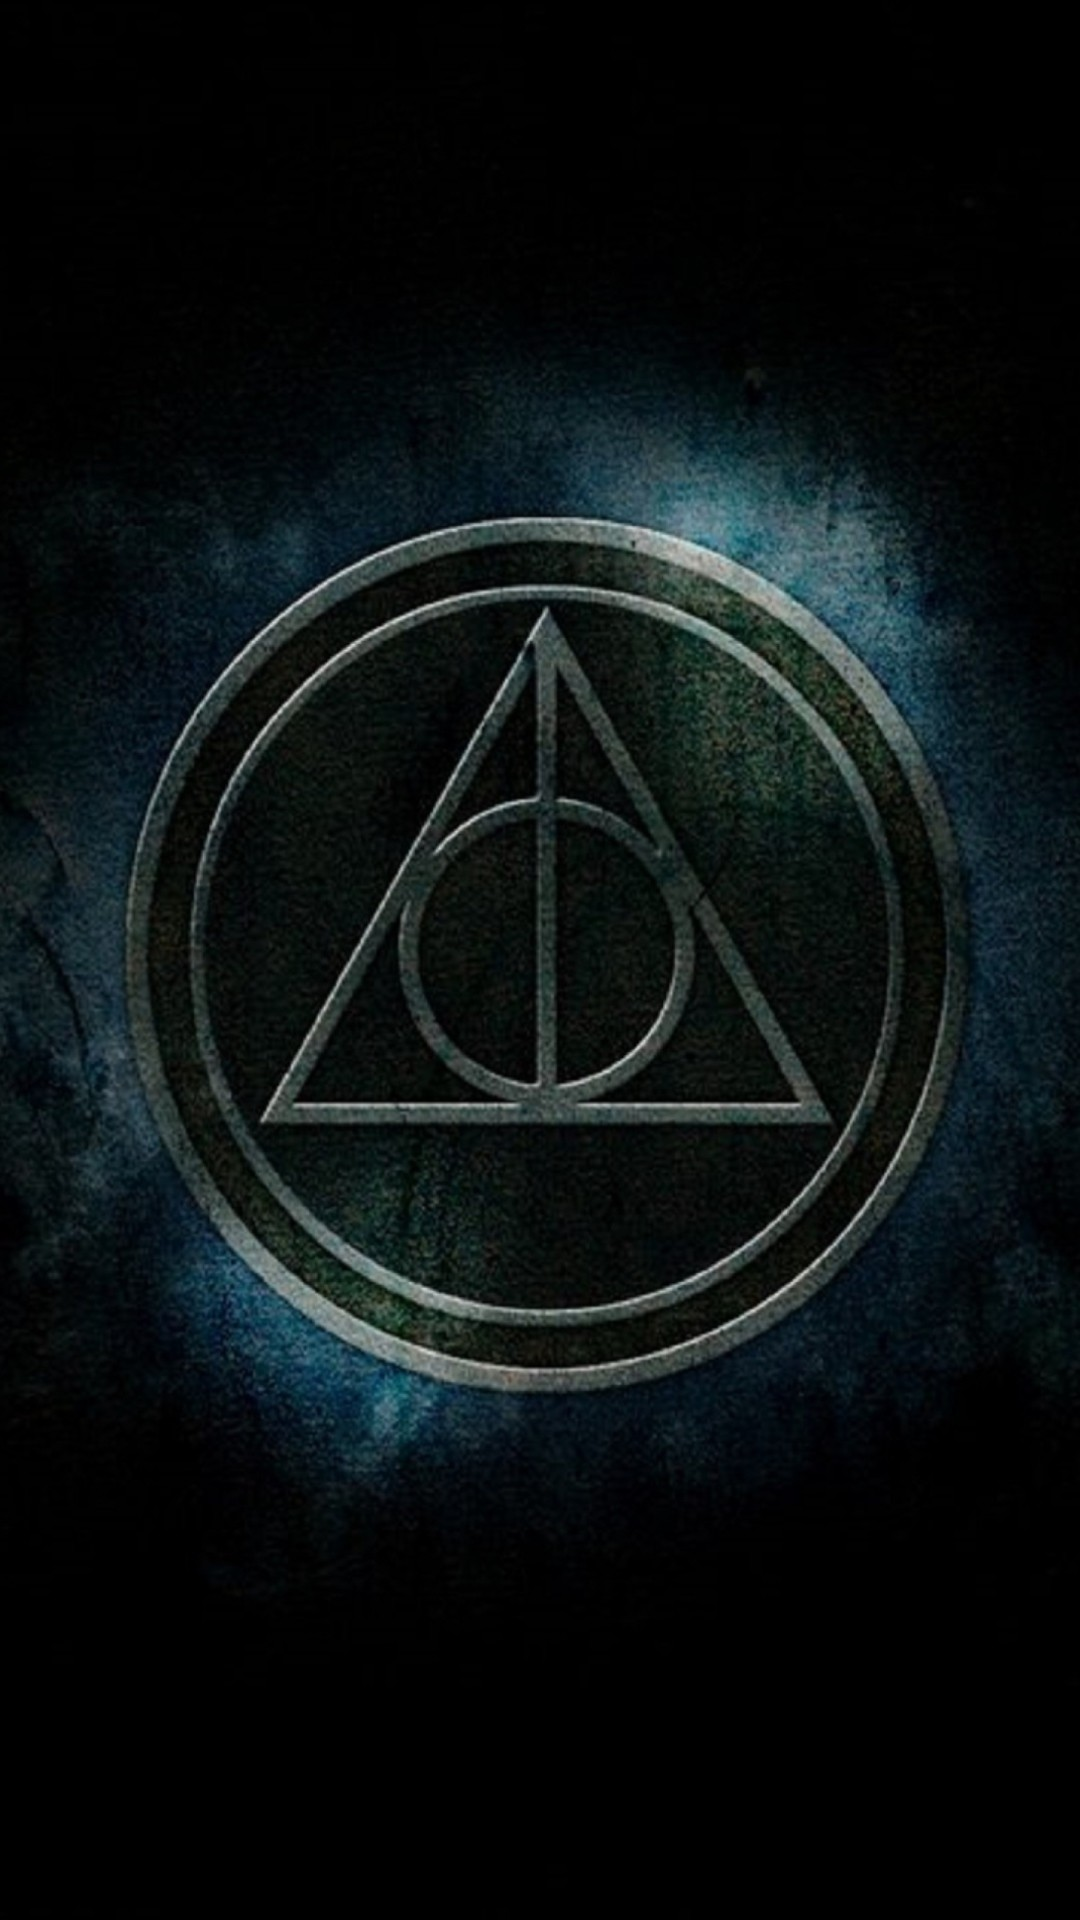 iPhone Harry Potter Wallpapers by Christopher Adams #12